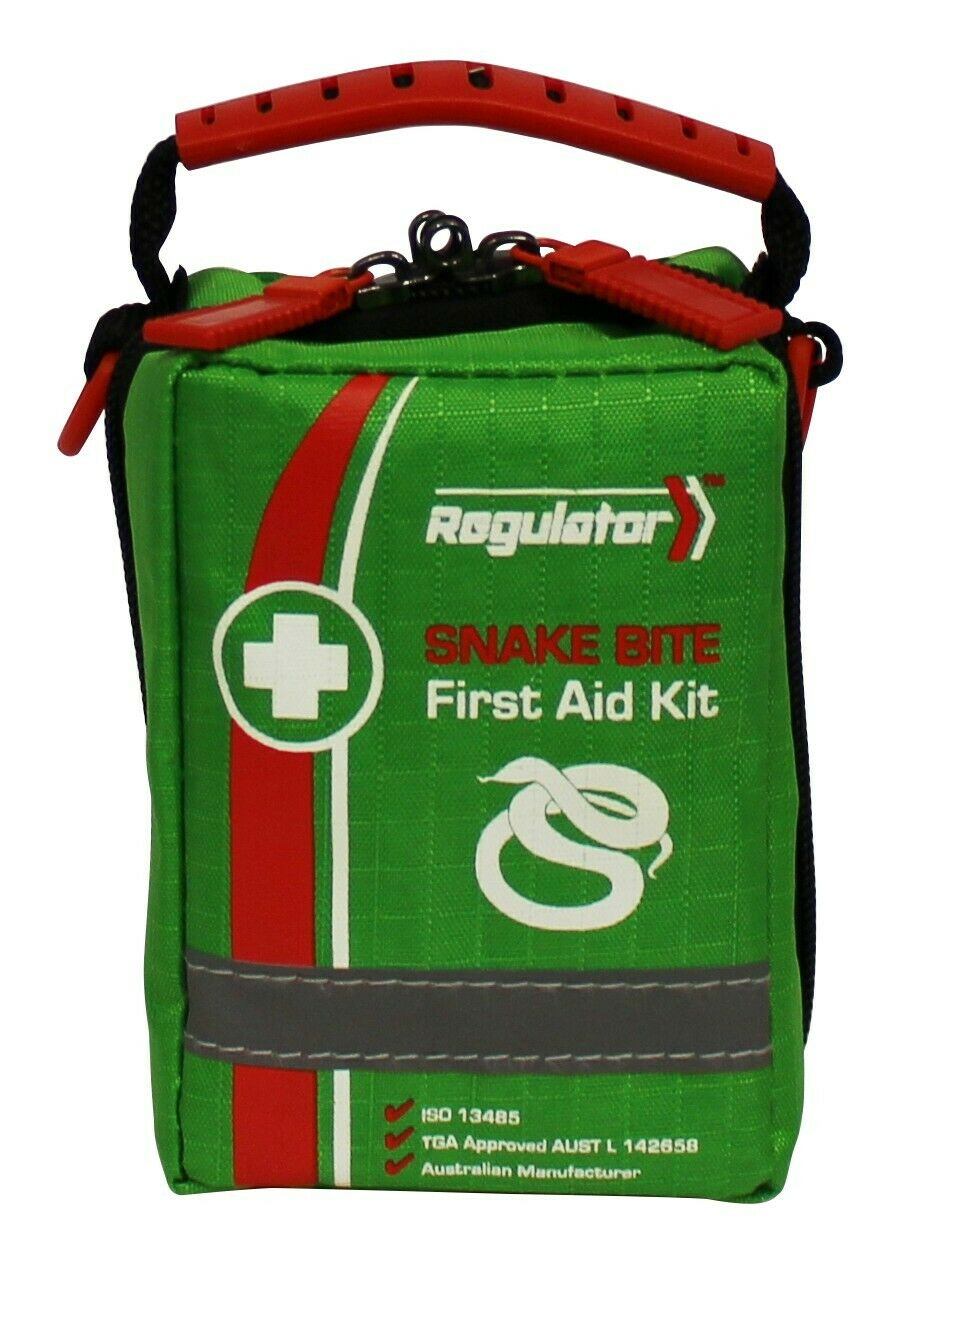 Emergency Essentials Pick - Regulator Snake Bite First Aid Kit